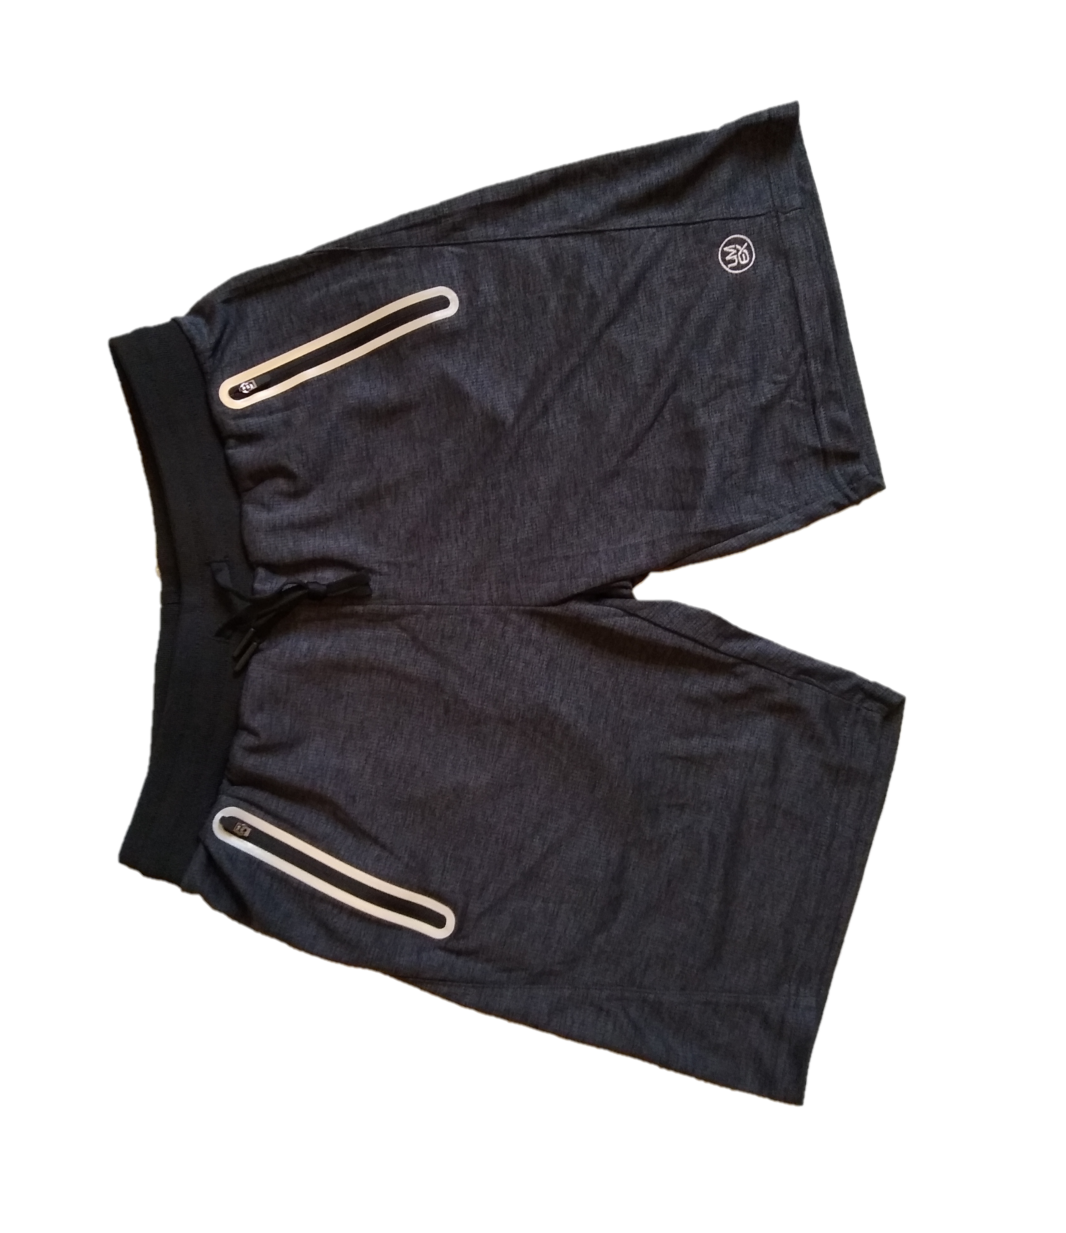 UMEX Performance Men's Shorts